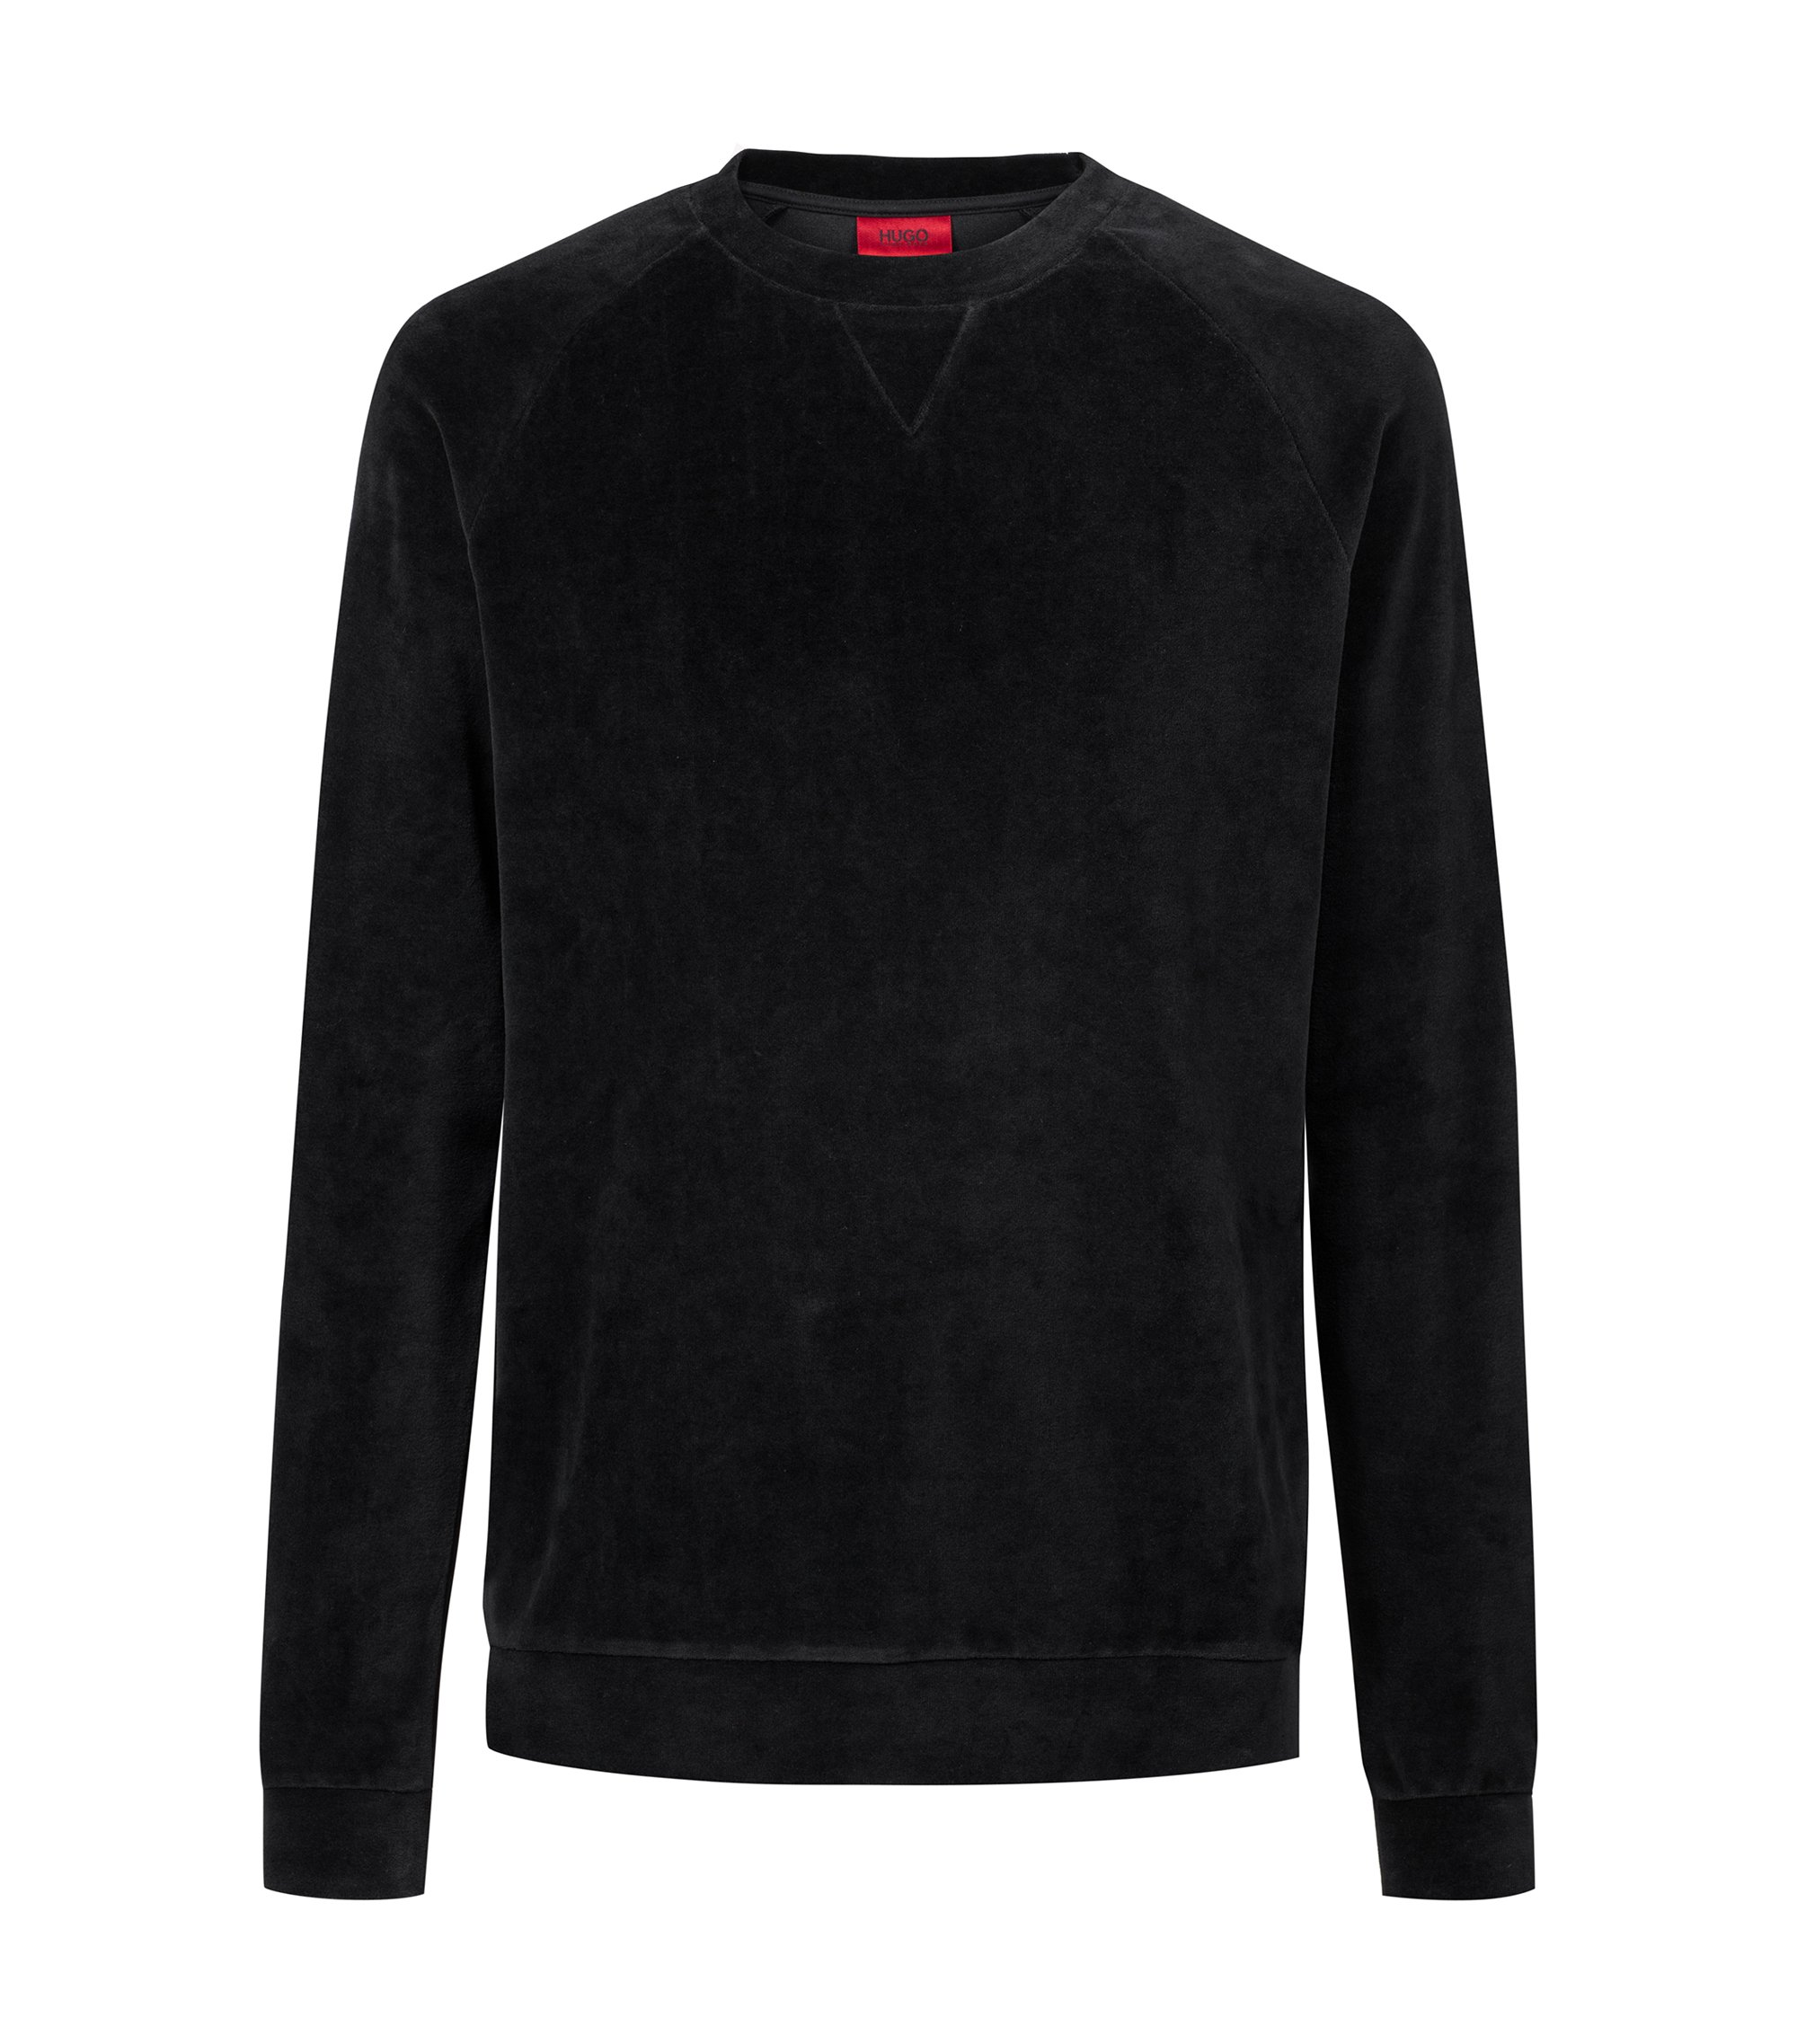 Oversized-fit sweatshirt in cotton-blend velour, Black